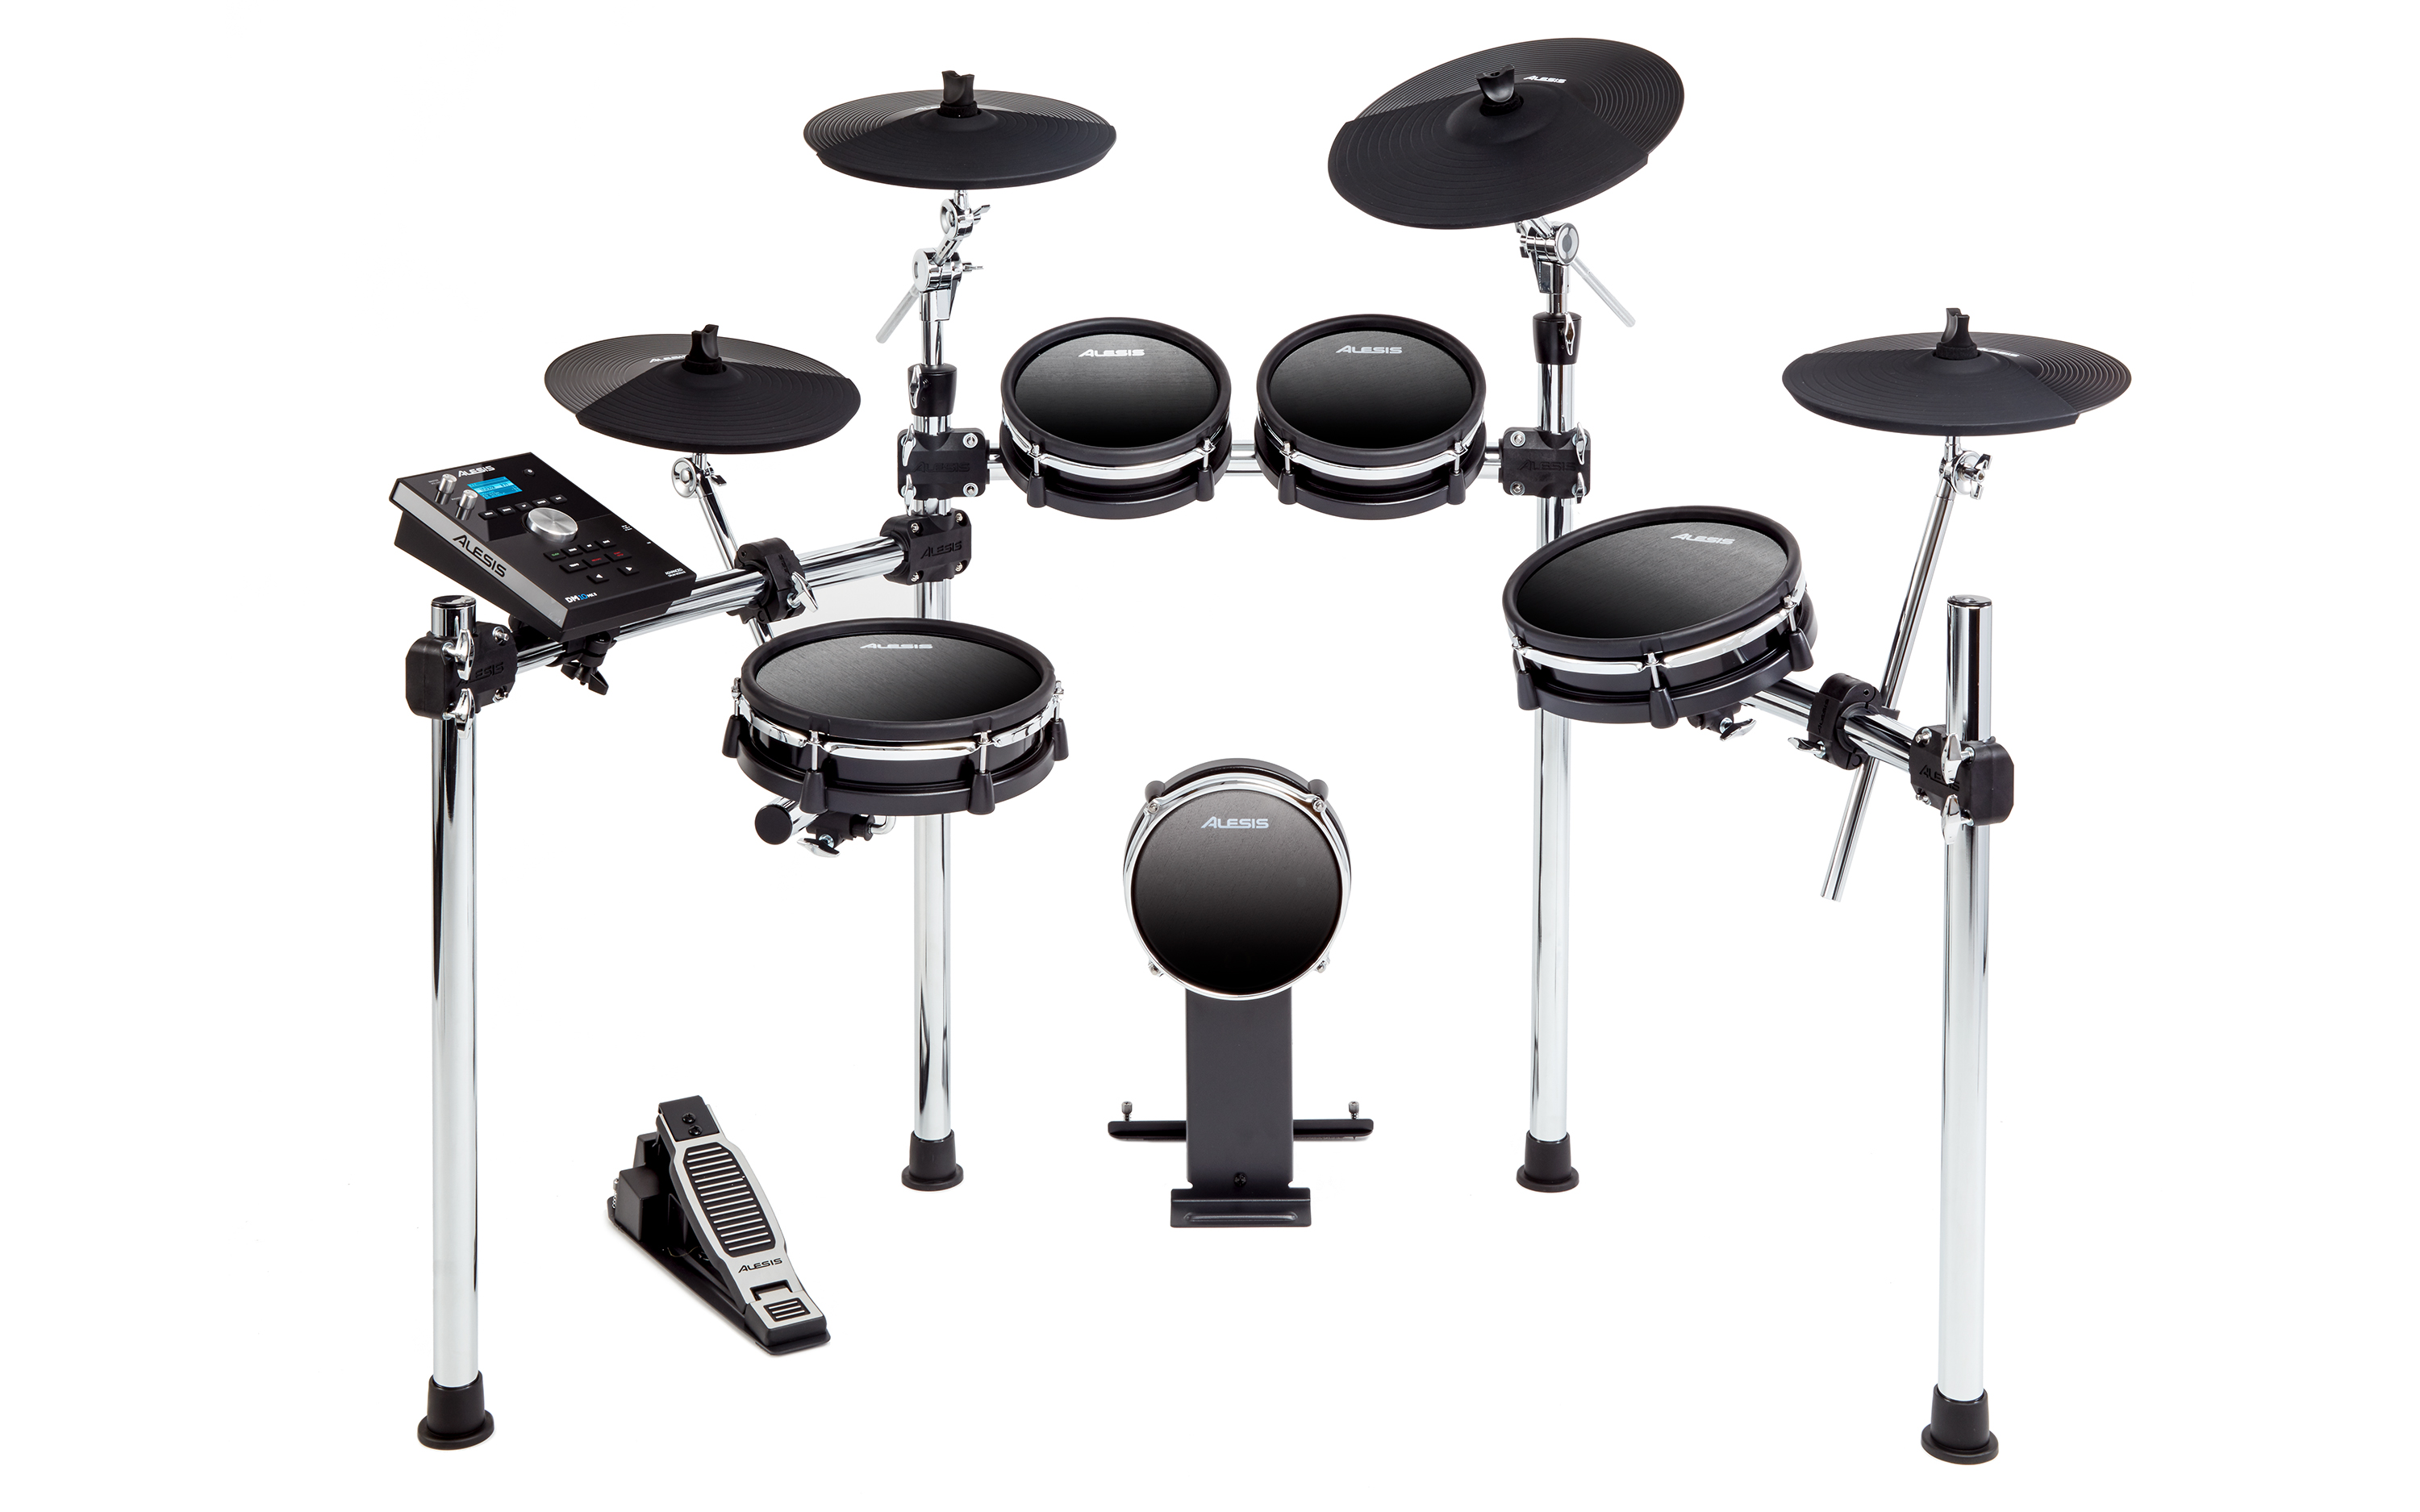 The Alesis DM10 MKII Studio Kit